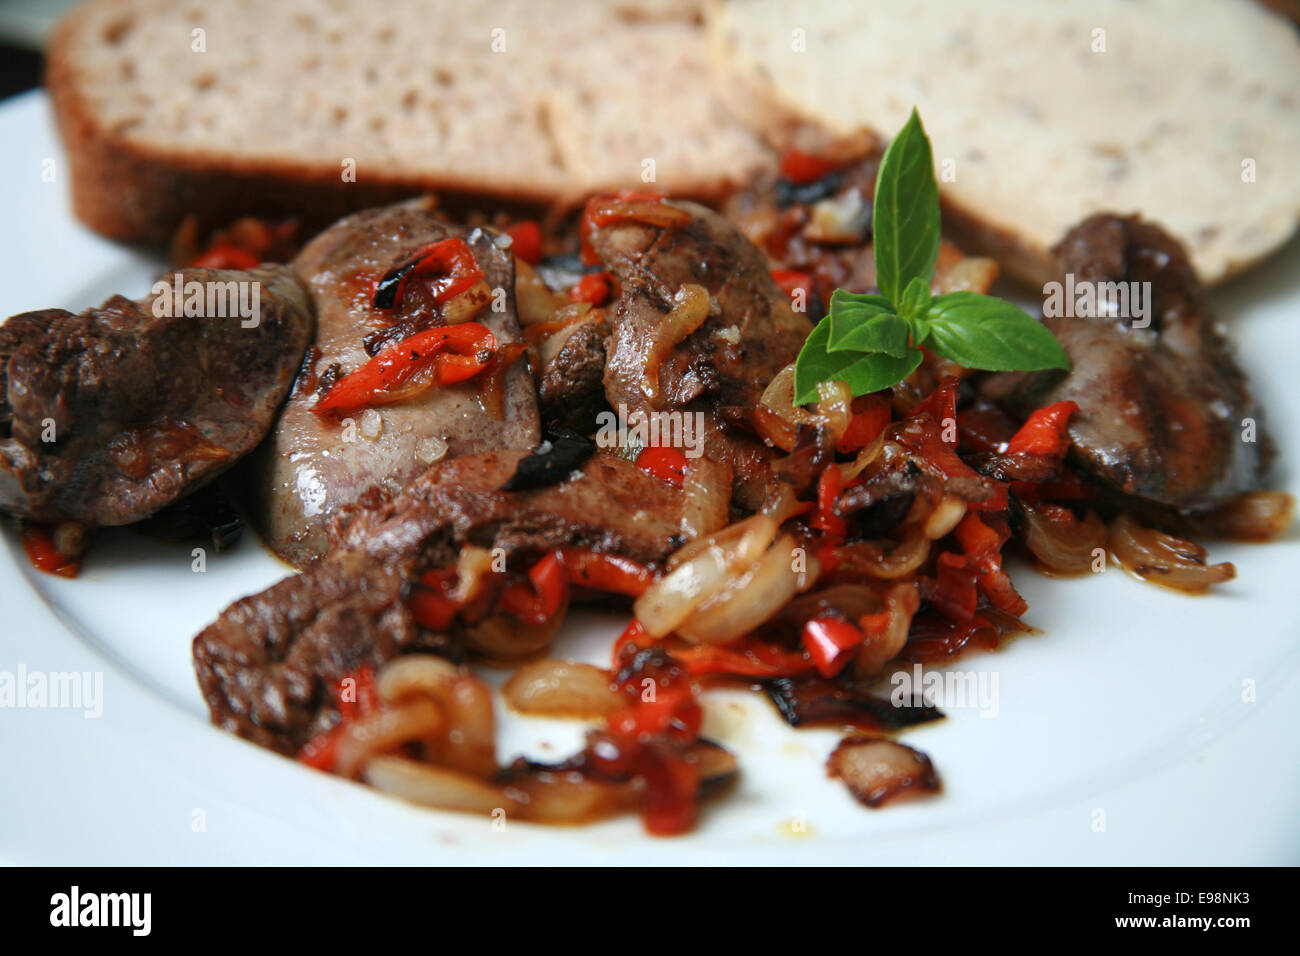 Pan fried chicken livers with caramelised onions and red peppers served on white plate with brown and rye bread - Stock Image